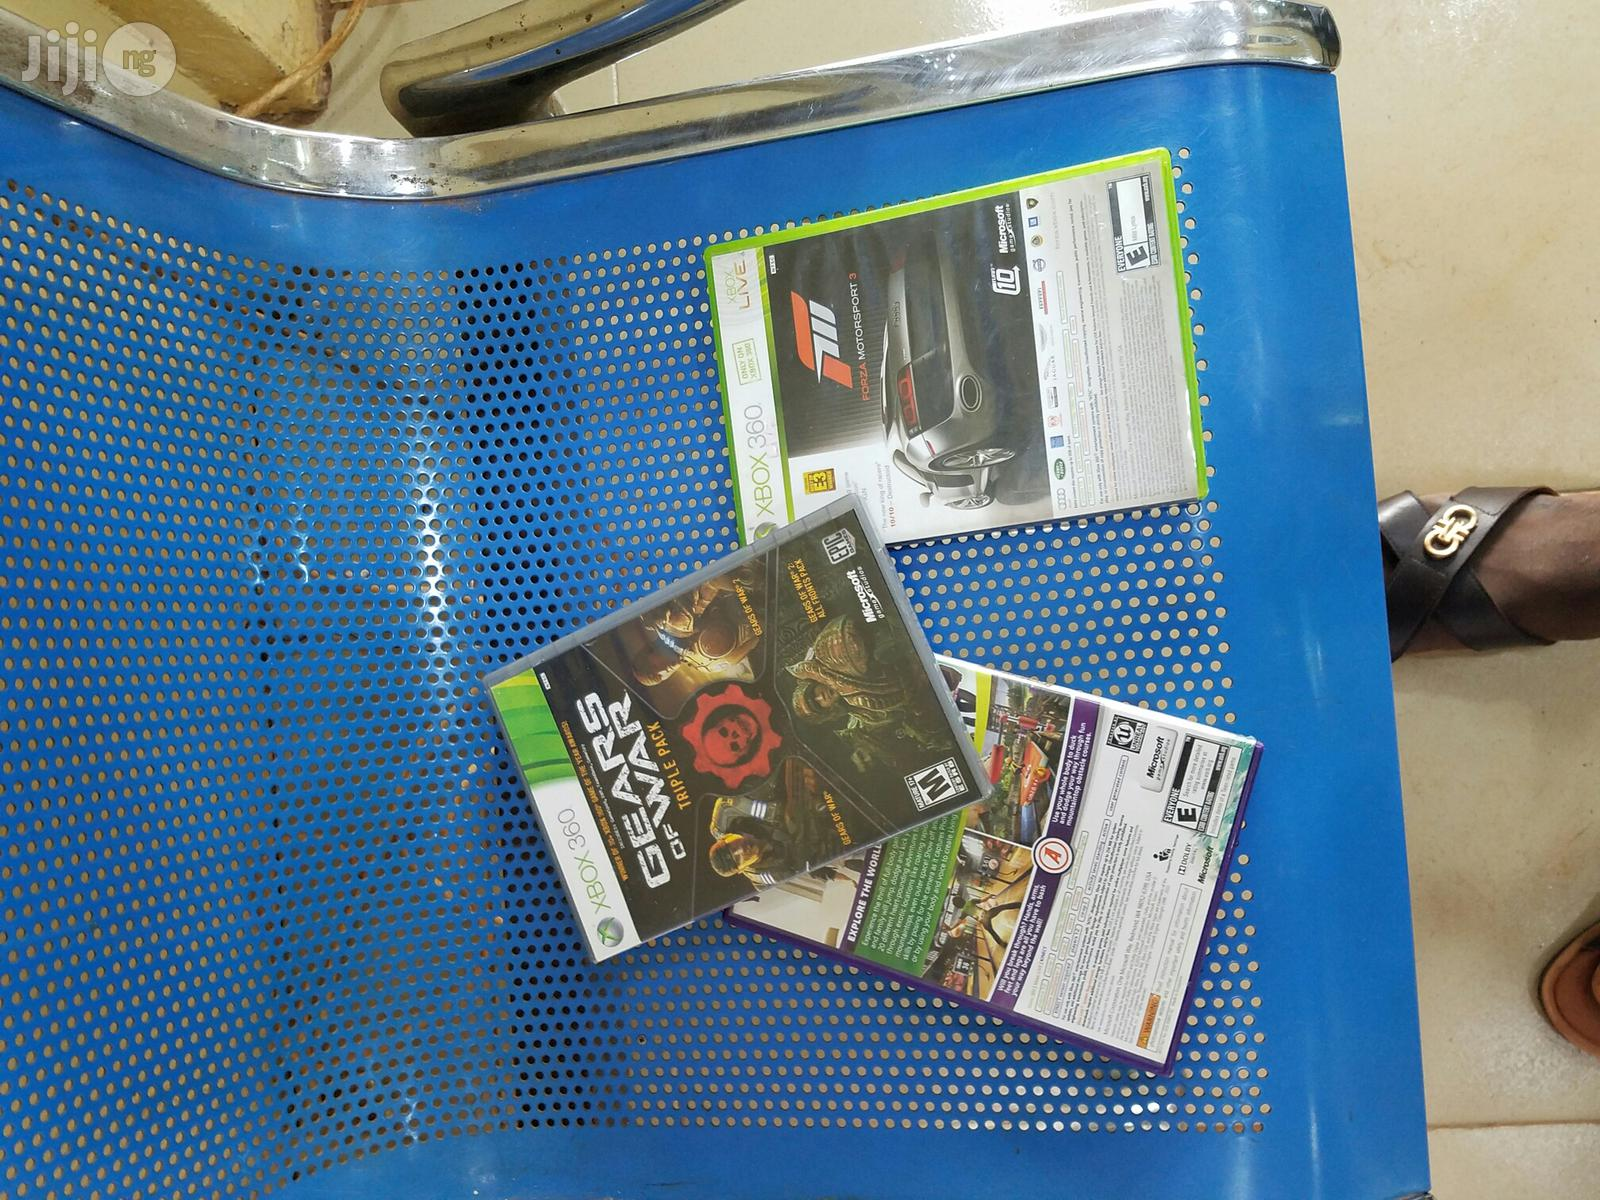 Xbox 360 (128gb) Console With Mic And Game Cds | Video Game Consoles for sale in Enugu, Enugu State, Nigeria